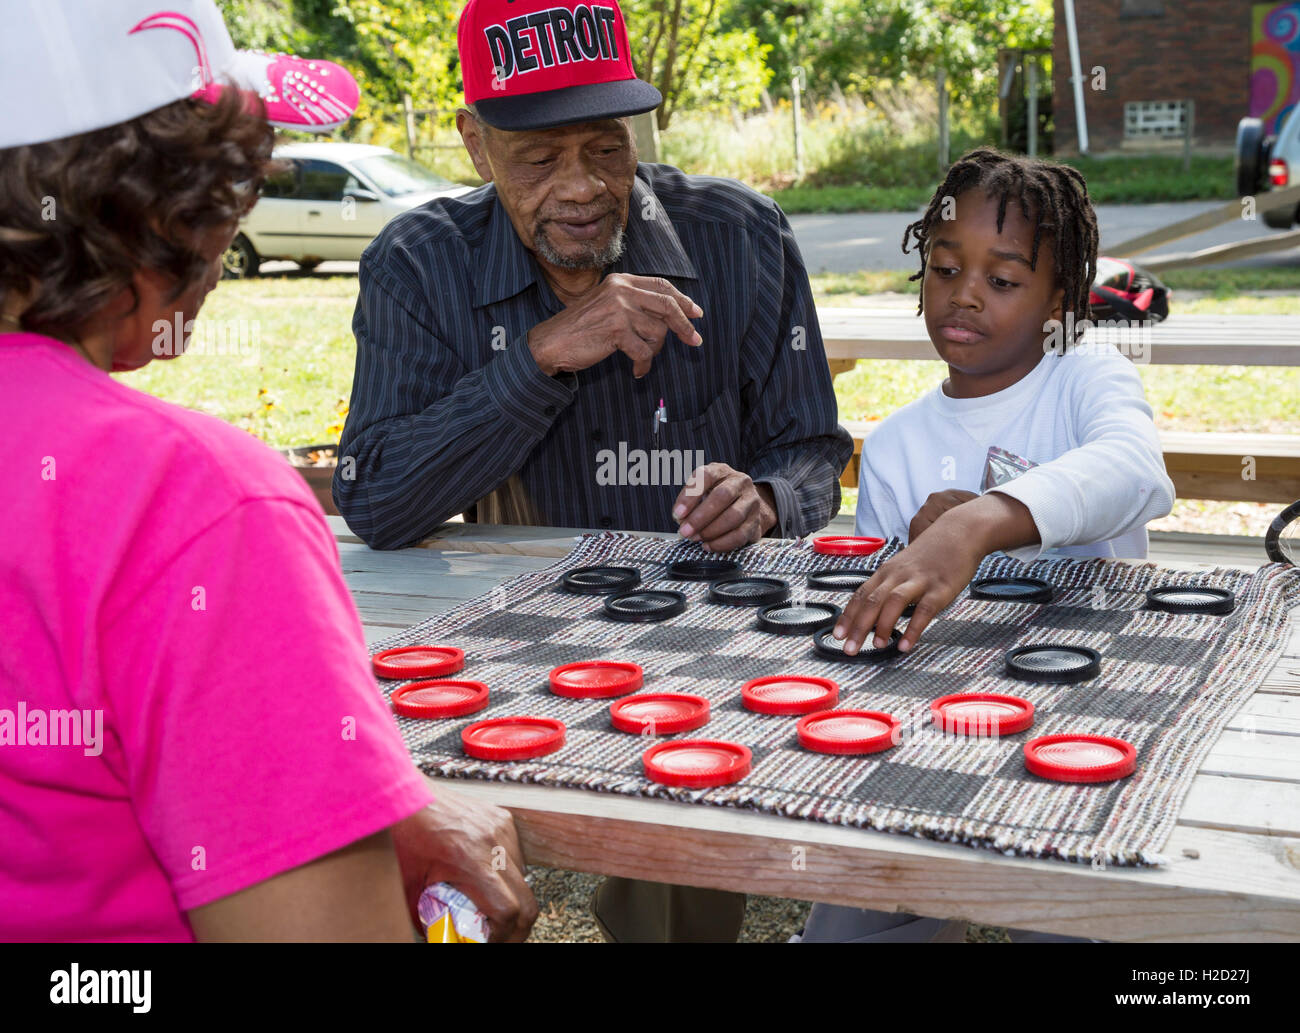 Detroit, Michigan - An elderly man and a young boy team up to play checkers at a block party. Stock Photo